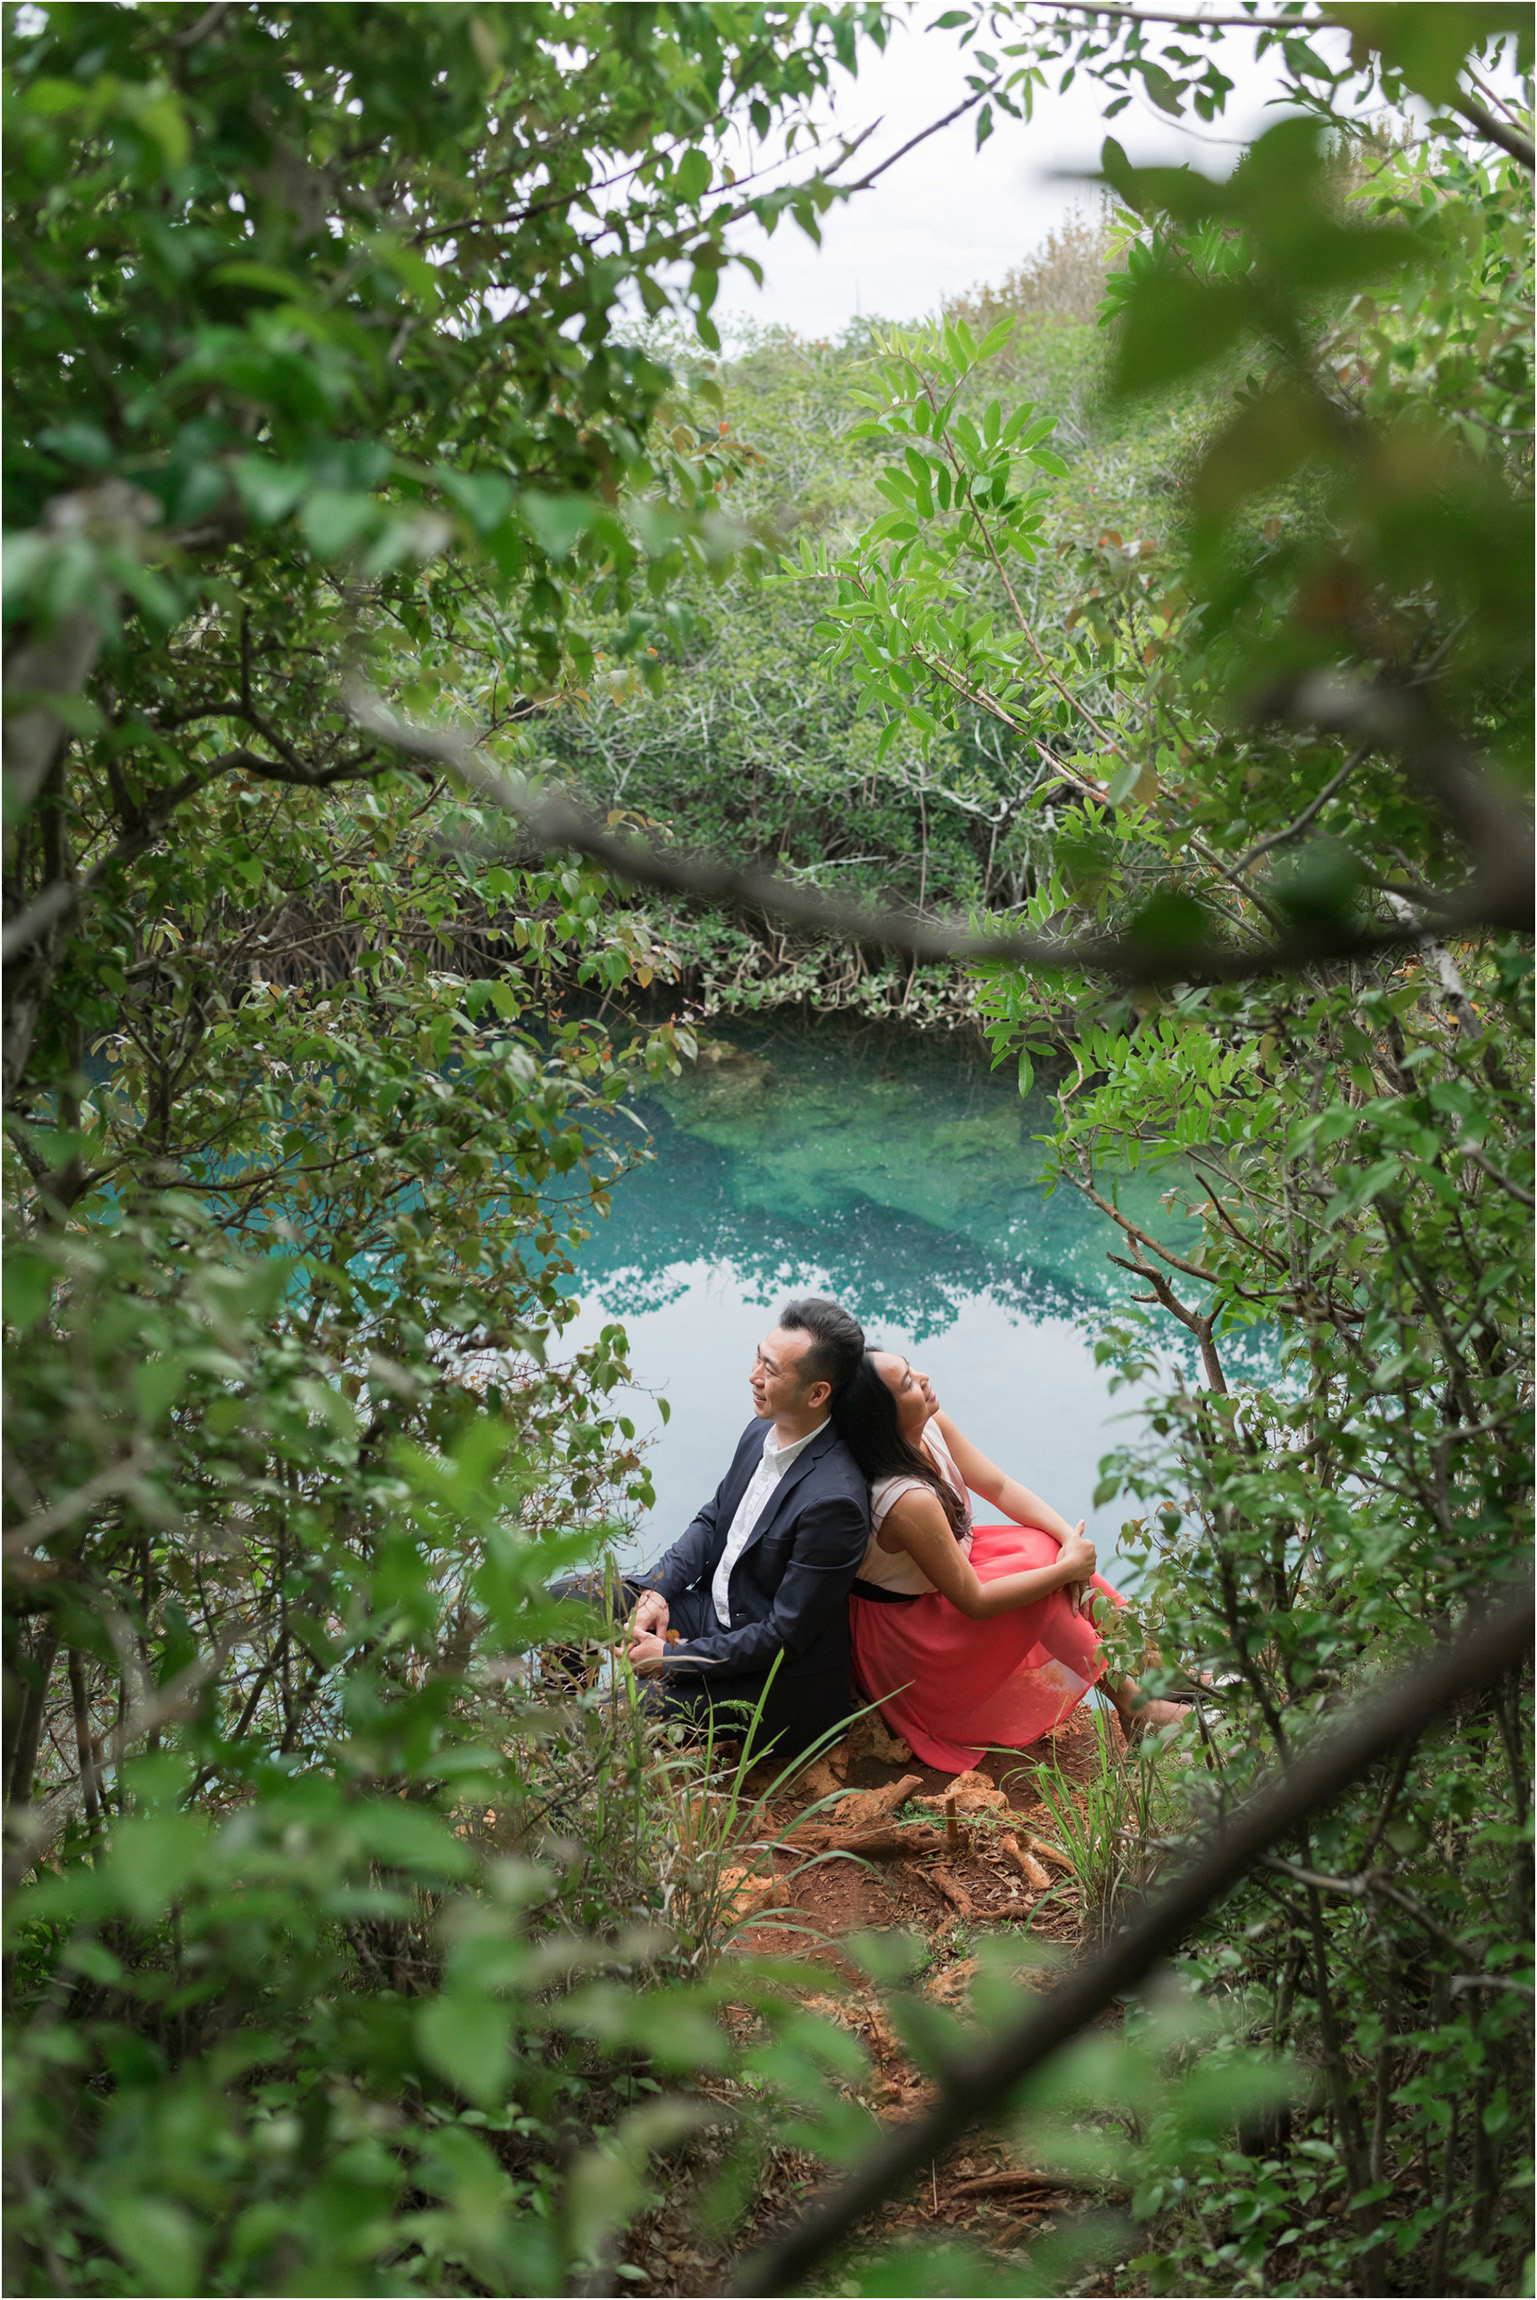 ©FianderFoto_Bermuda Engagement Photographer_Tom Moores Jungle_Owen_Chanson_023.jpg